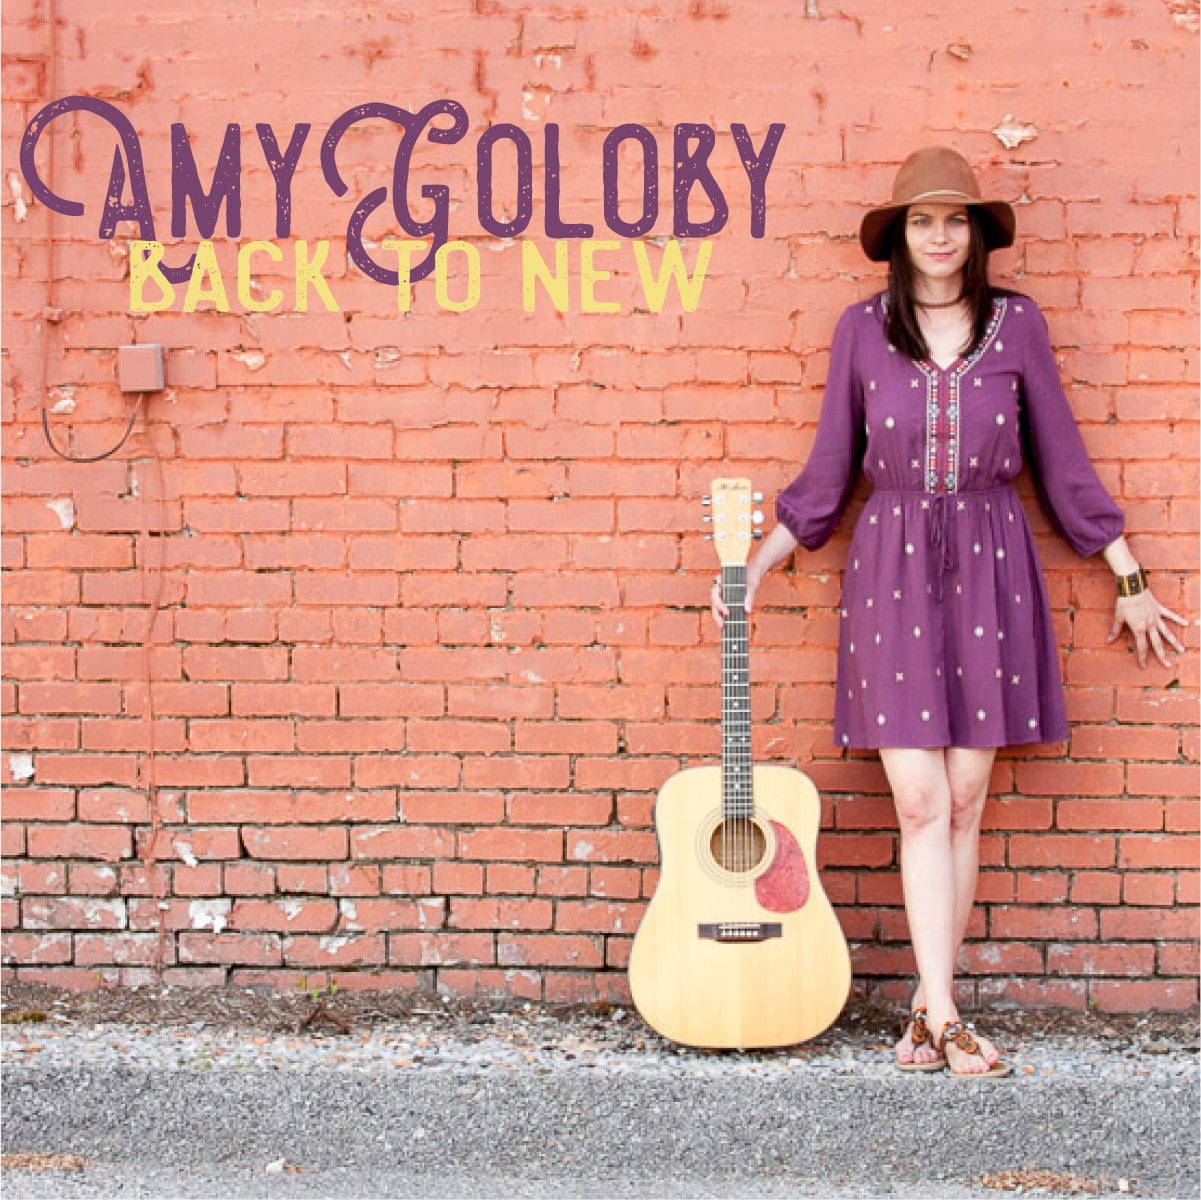 amy goloby back to new album cover pink brick purple dress